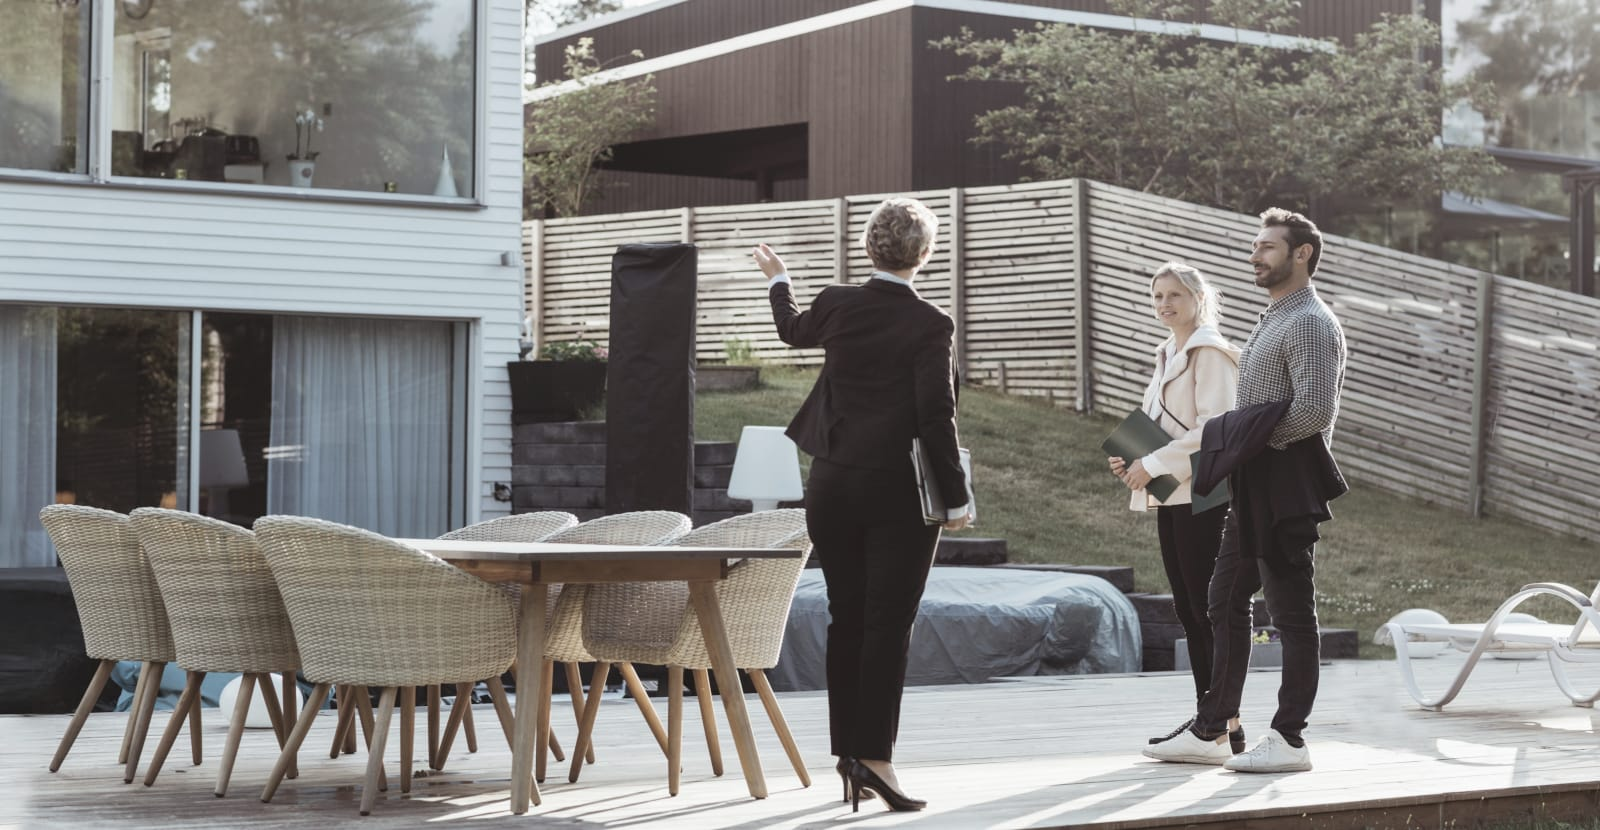 A real estate agent in a suit is standing with a couple on a patio outside a house.